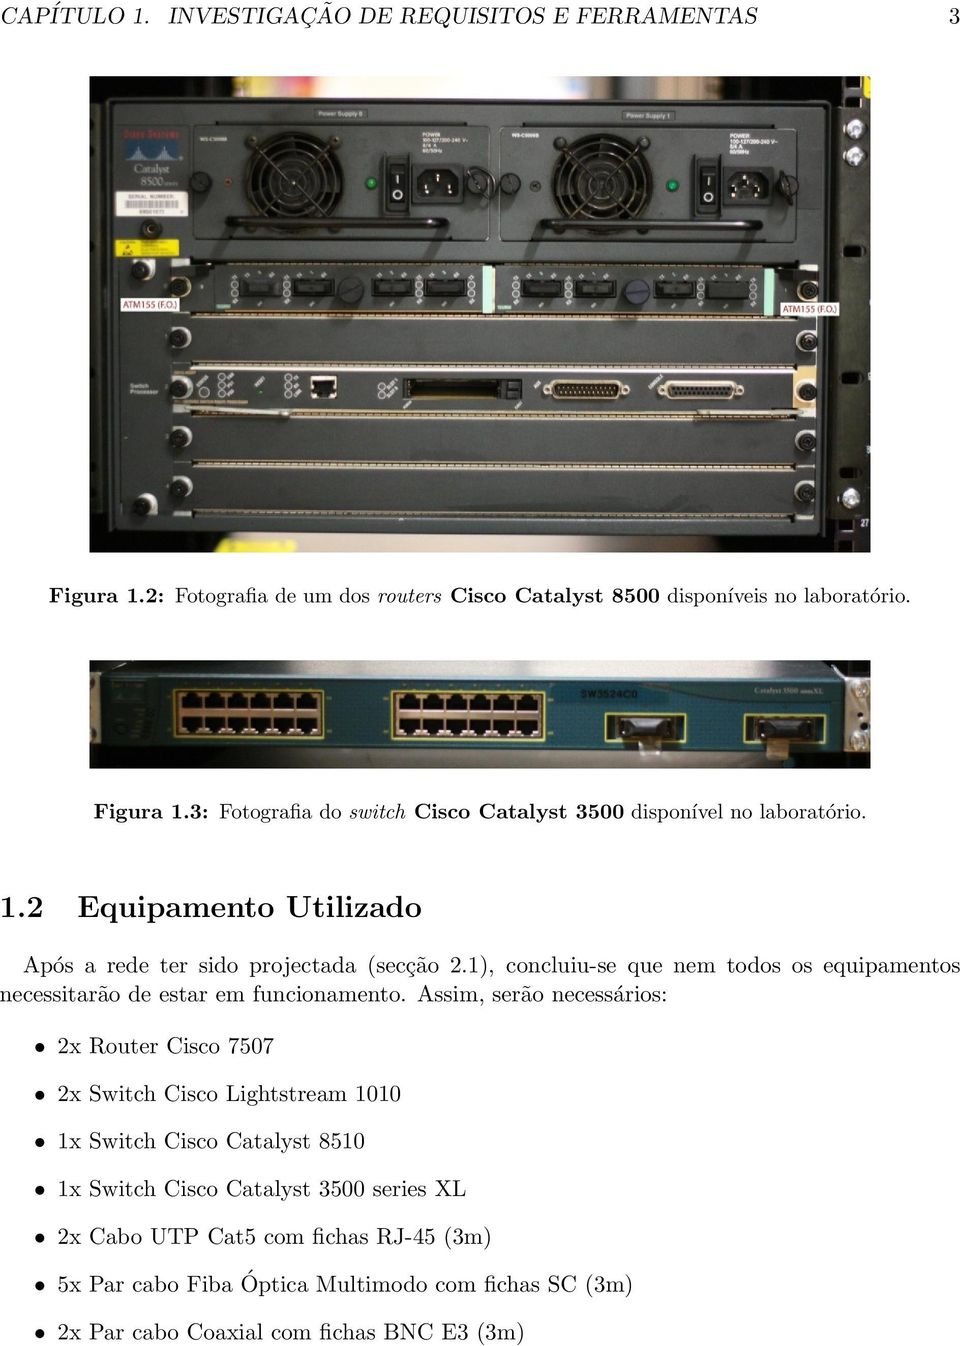 Assim, serão necessários: 2x Router Cisco 7507 2x Switch Cisco Lightstream 1010 1x Switch Cisco Catalyst 8510 1x Switch Cisco Catalyst 3500 series XL 2x Cabo UTP